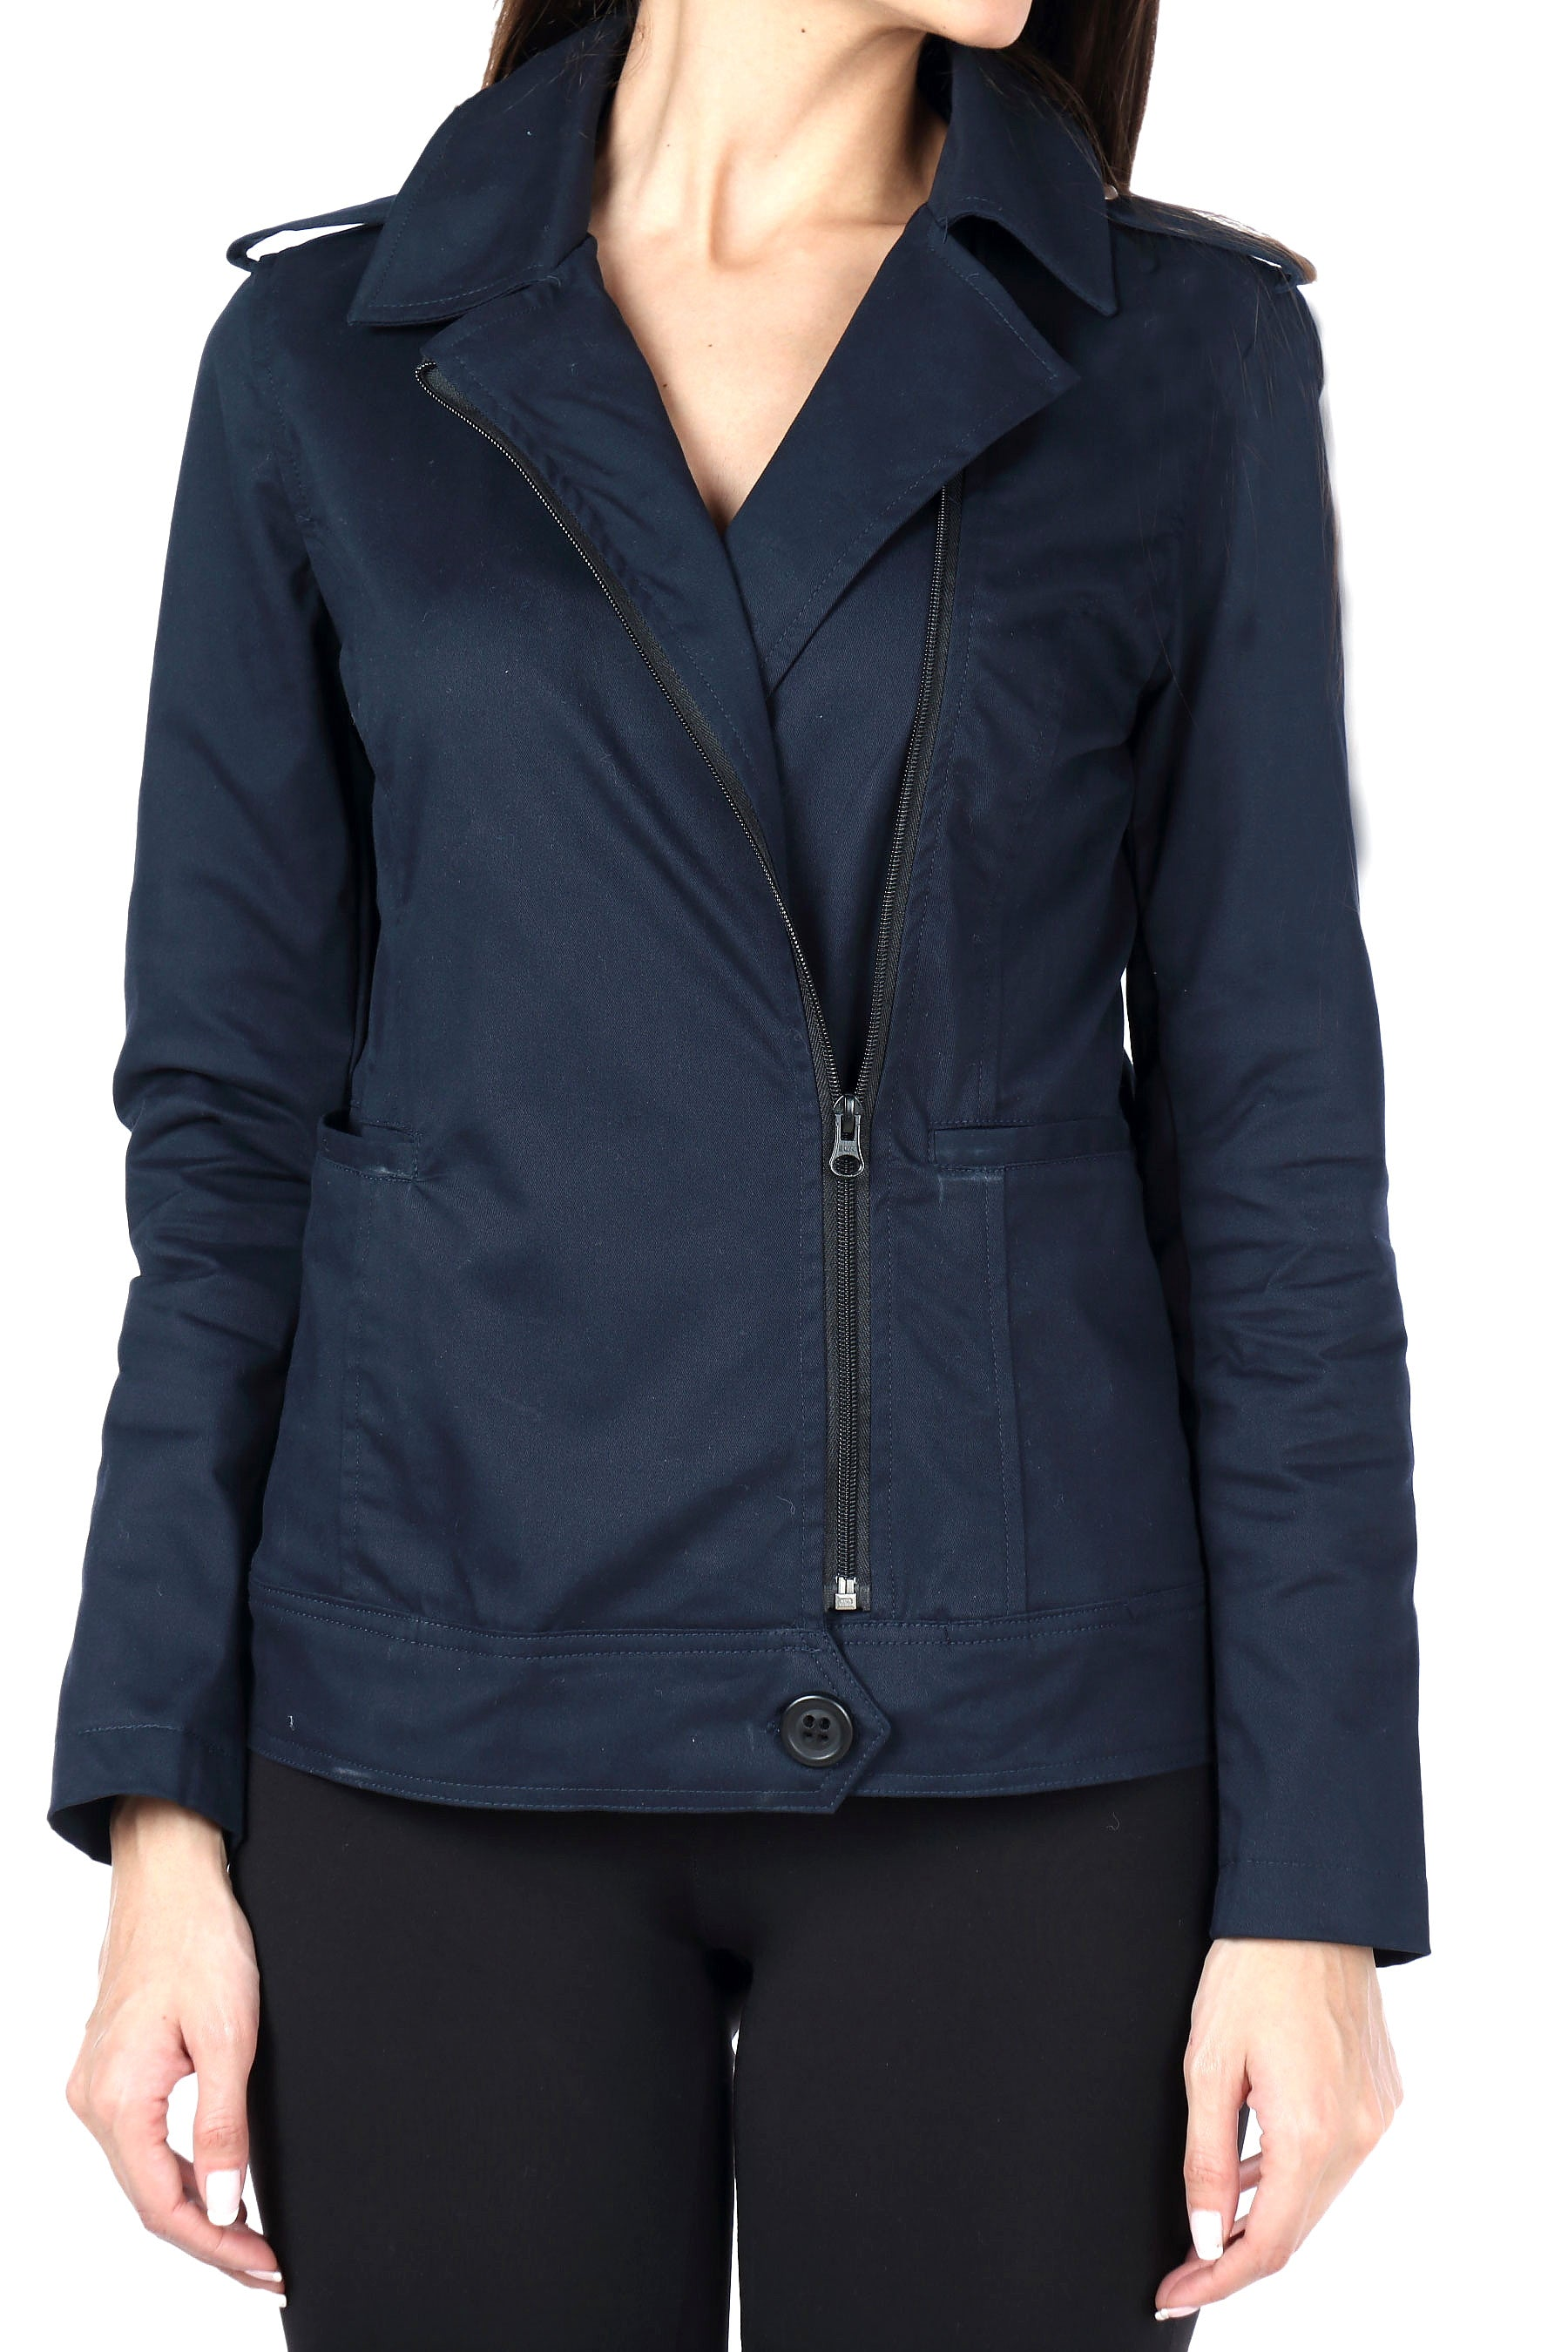 Biker Jacket in Navy Twill Close Up